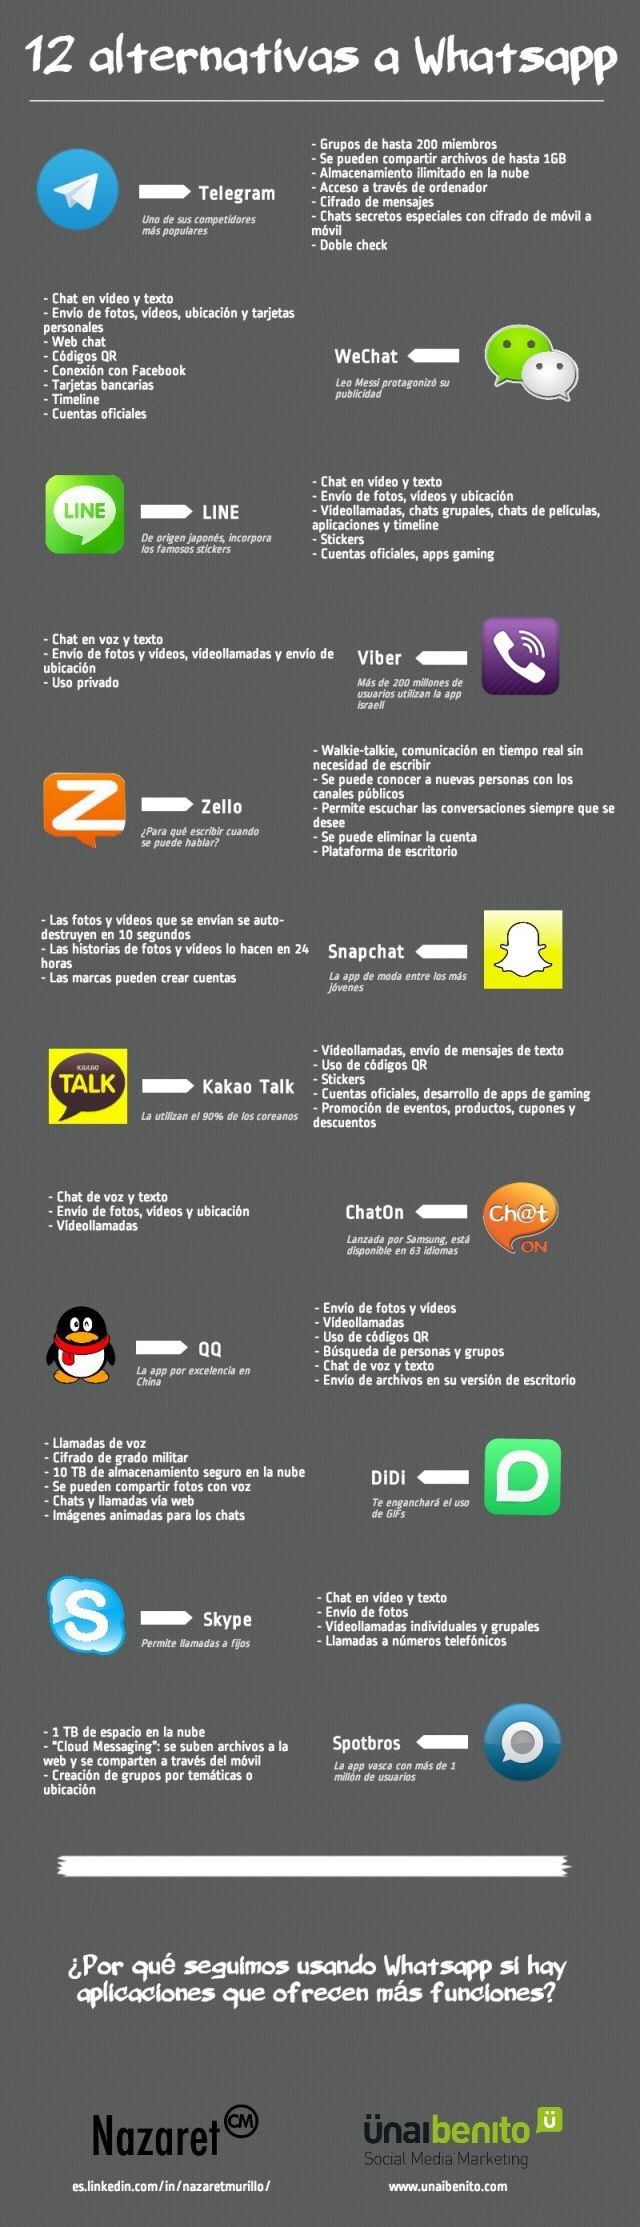 Whatsapp las 12 alternativas en una infografía